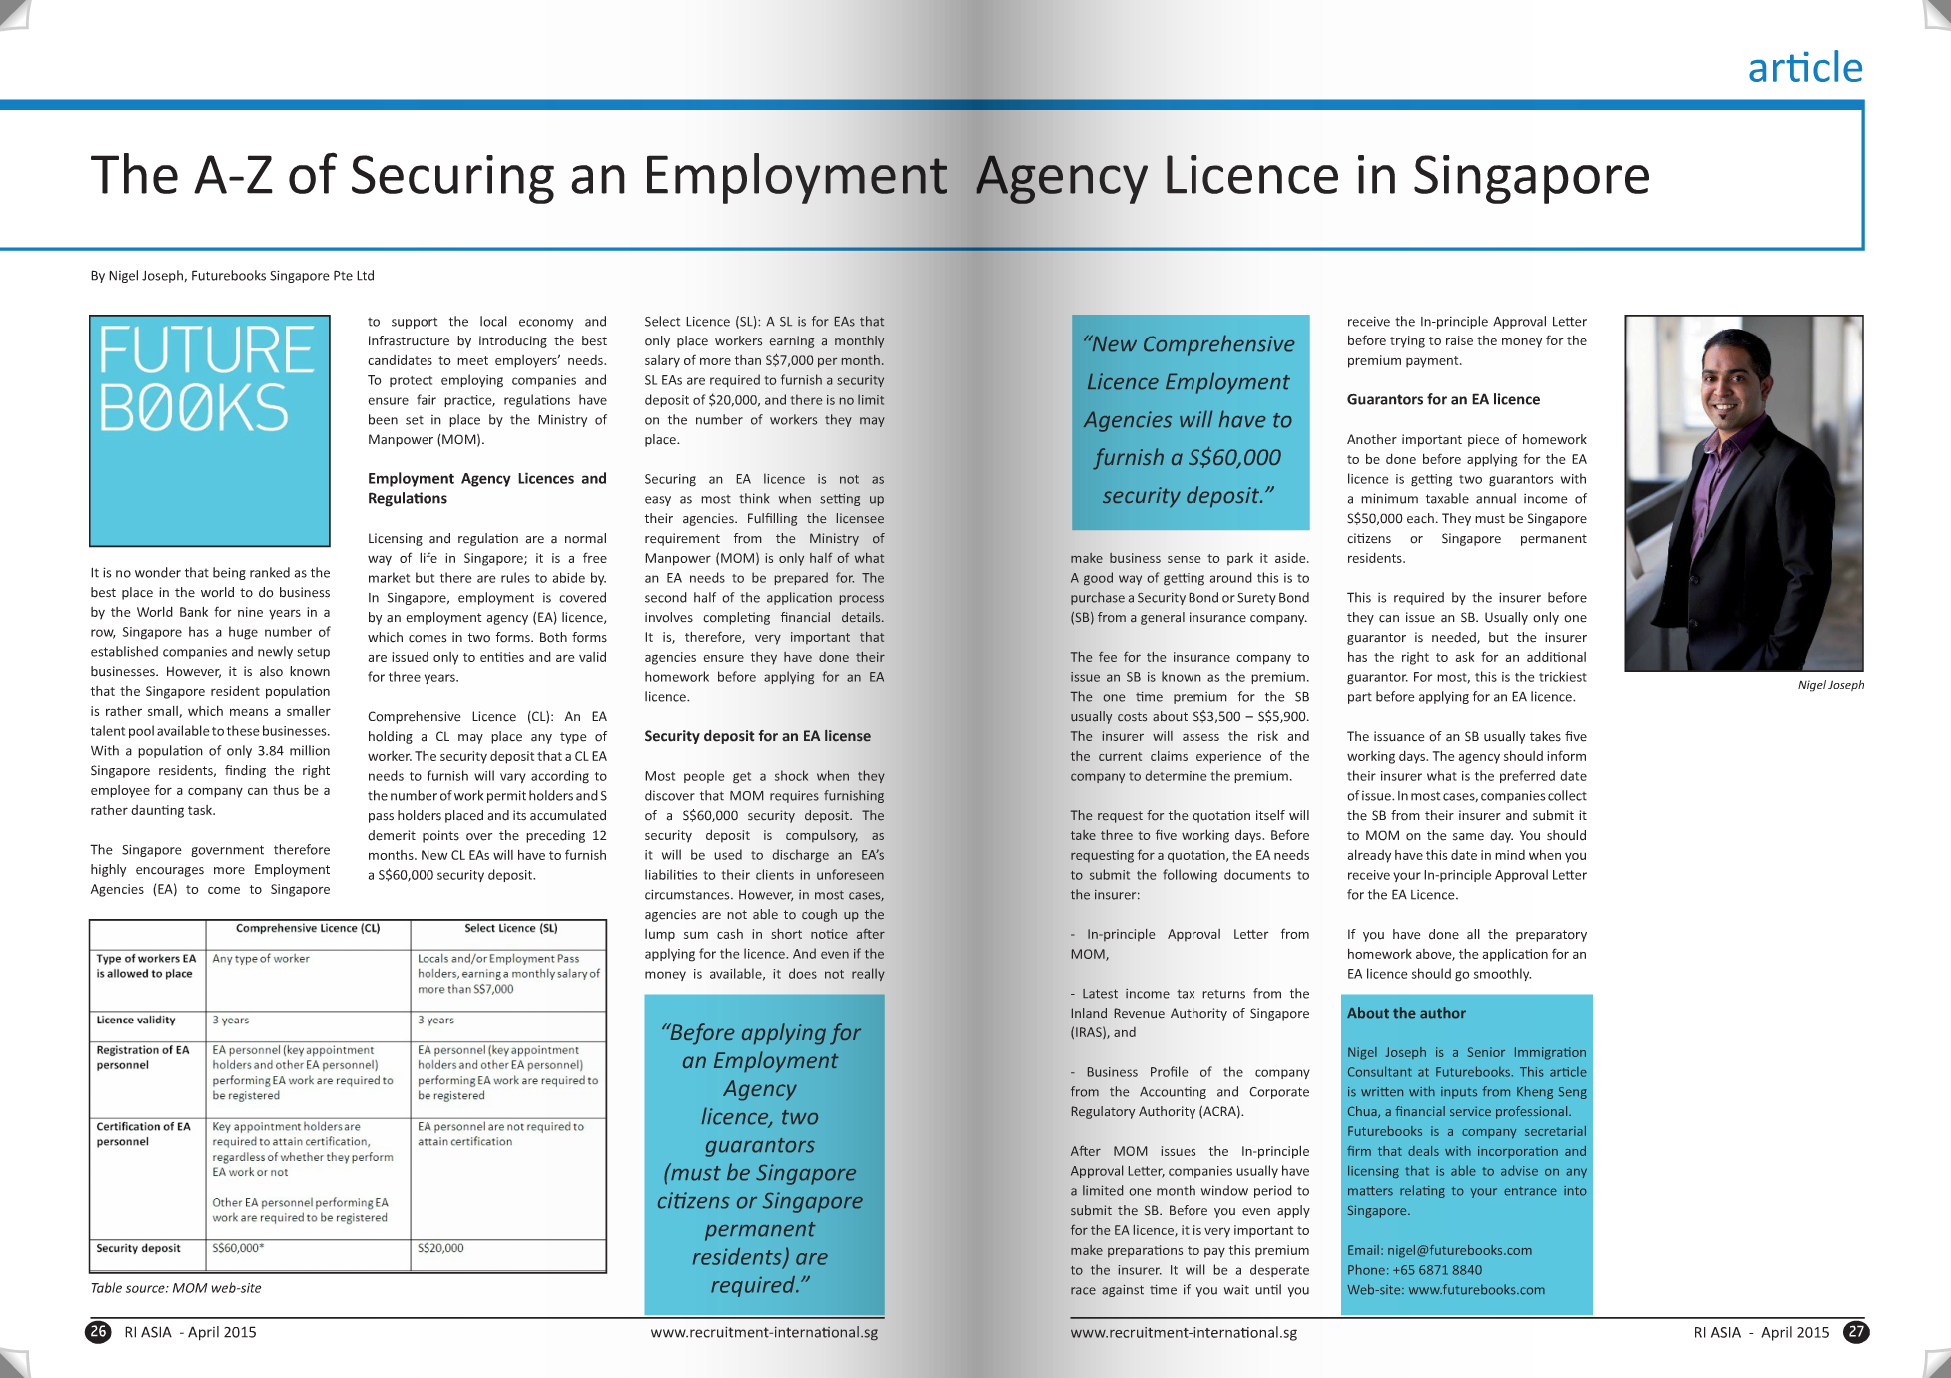 The A-Z of securing an employment agency licence in Singapore